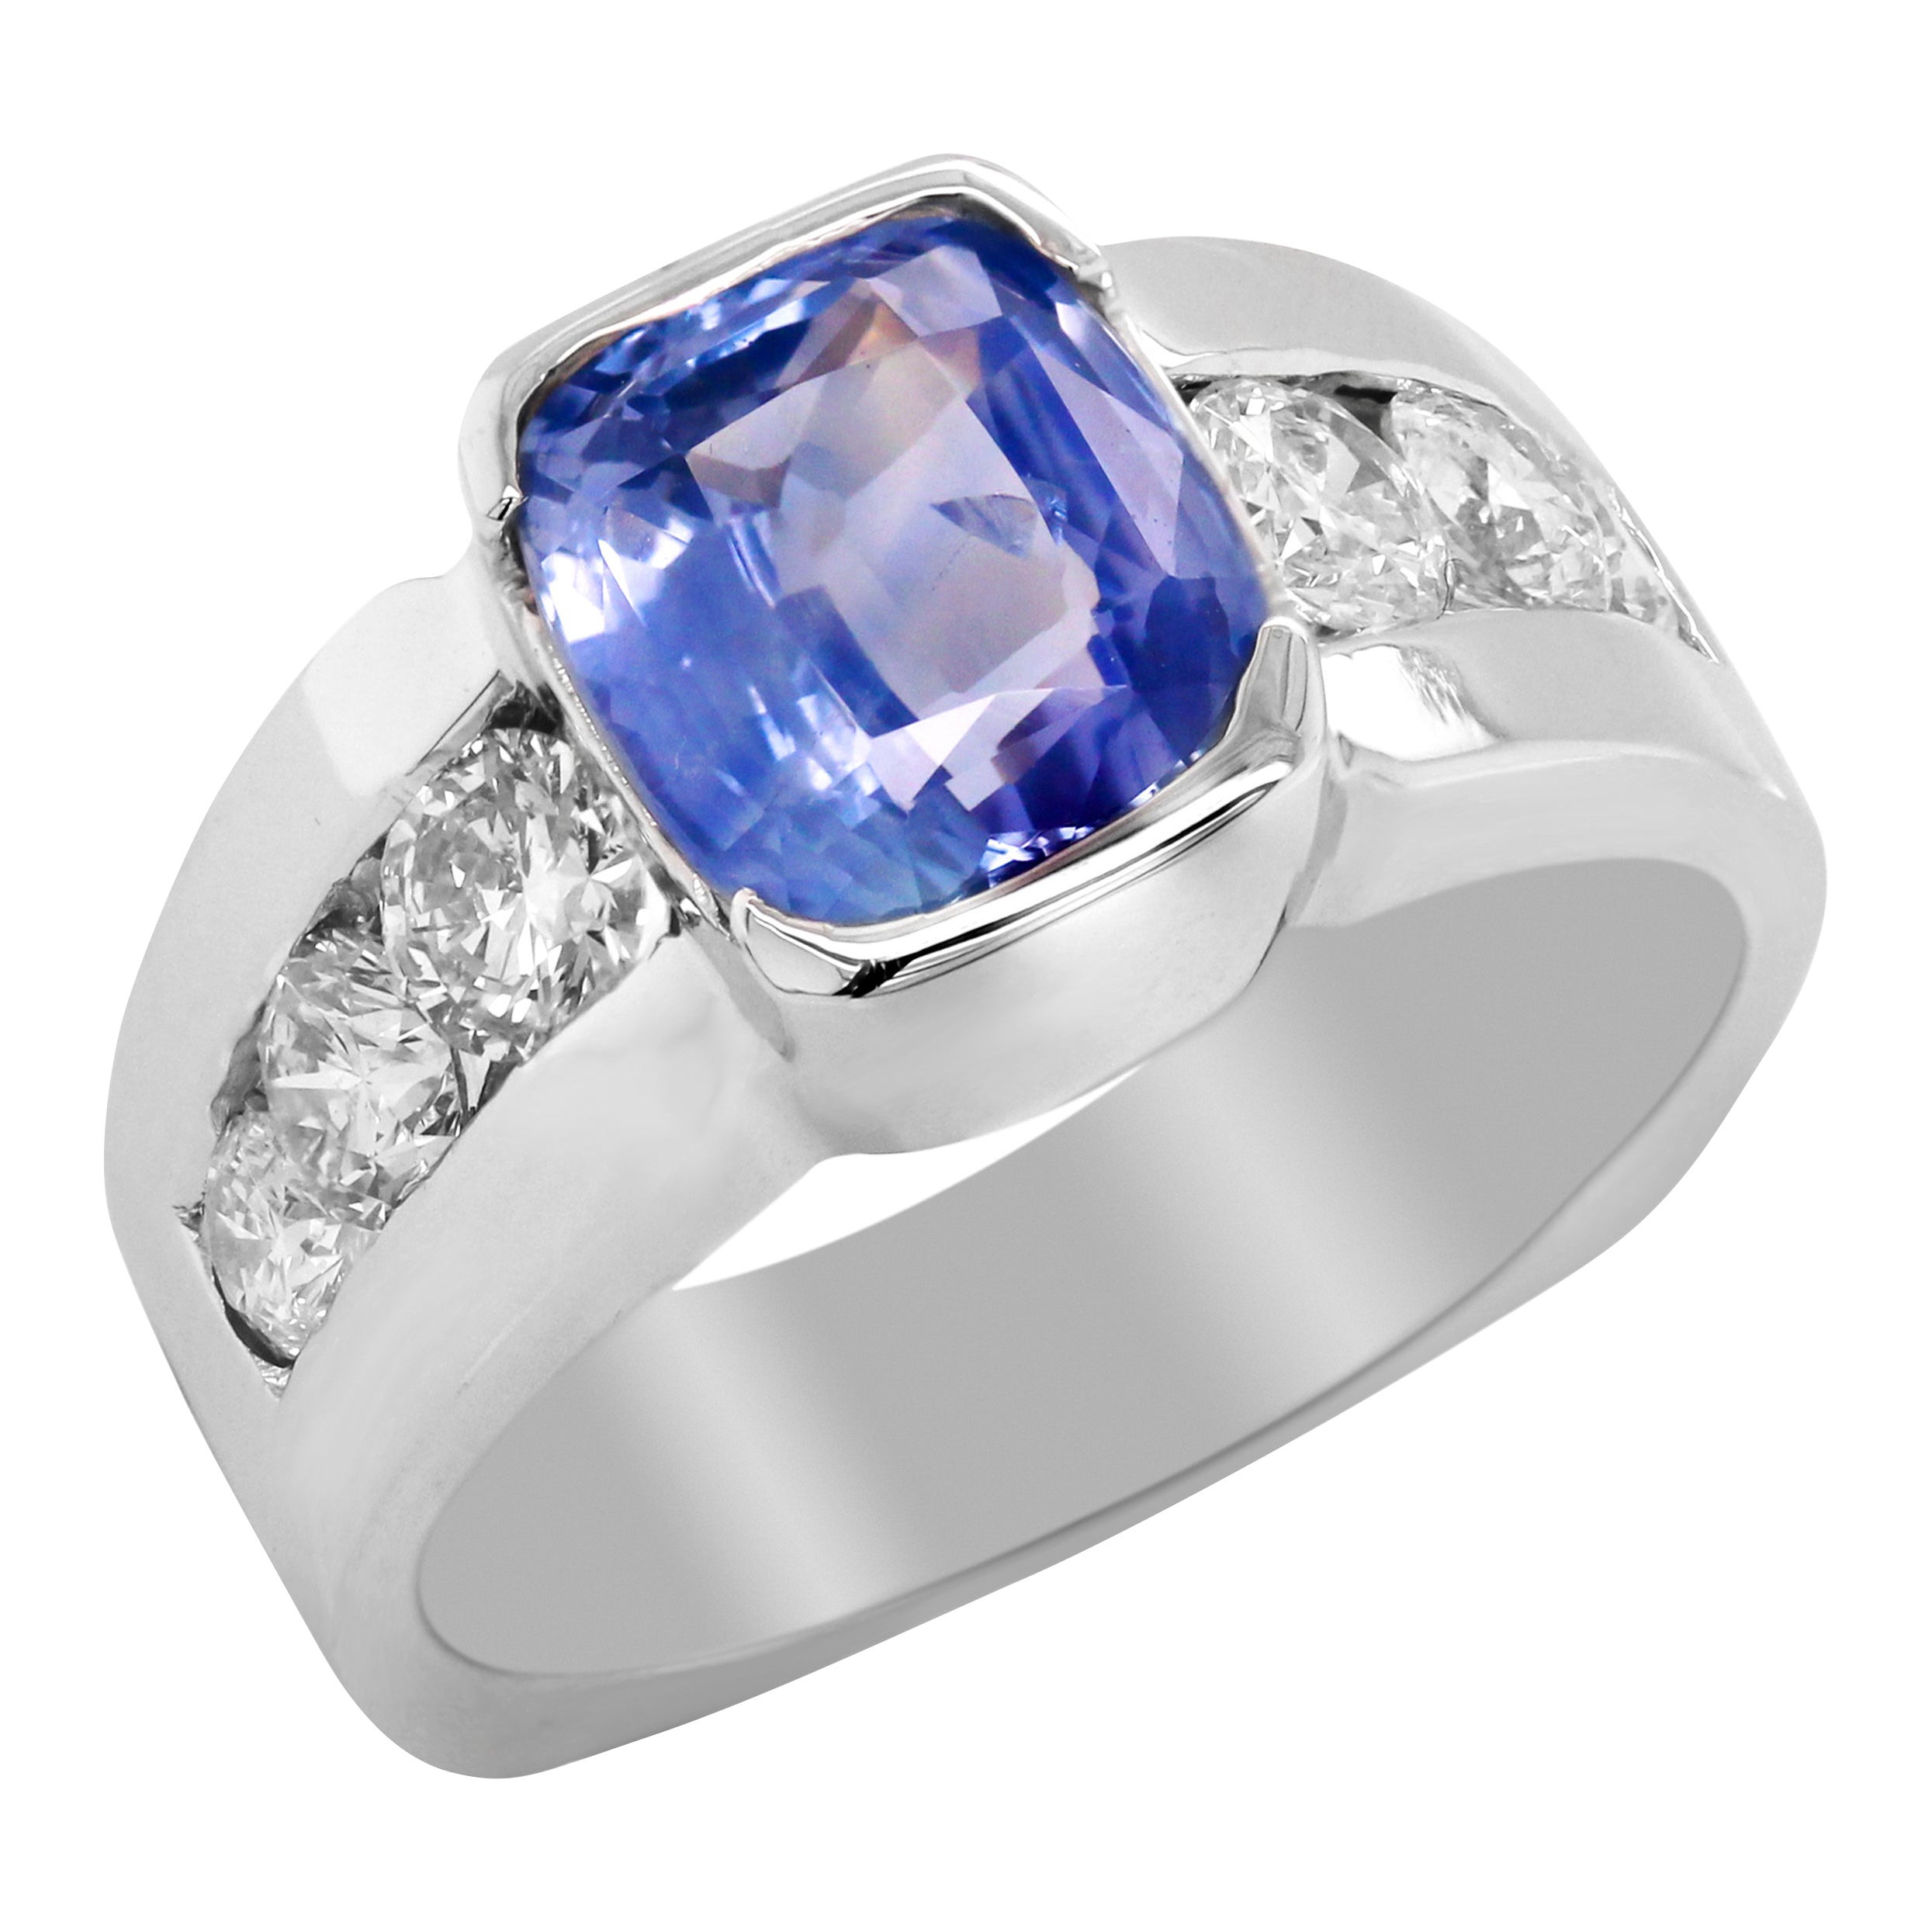 5.21 Carat Cushion Cut No Heat Ceylon Blue Sapphire Diamond 14 Karat Gold Ring